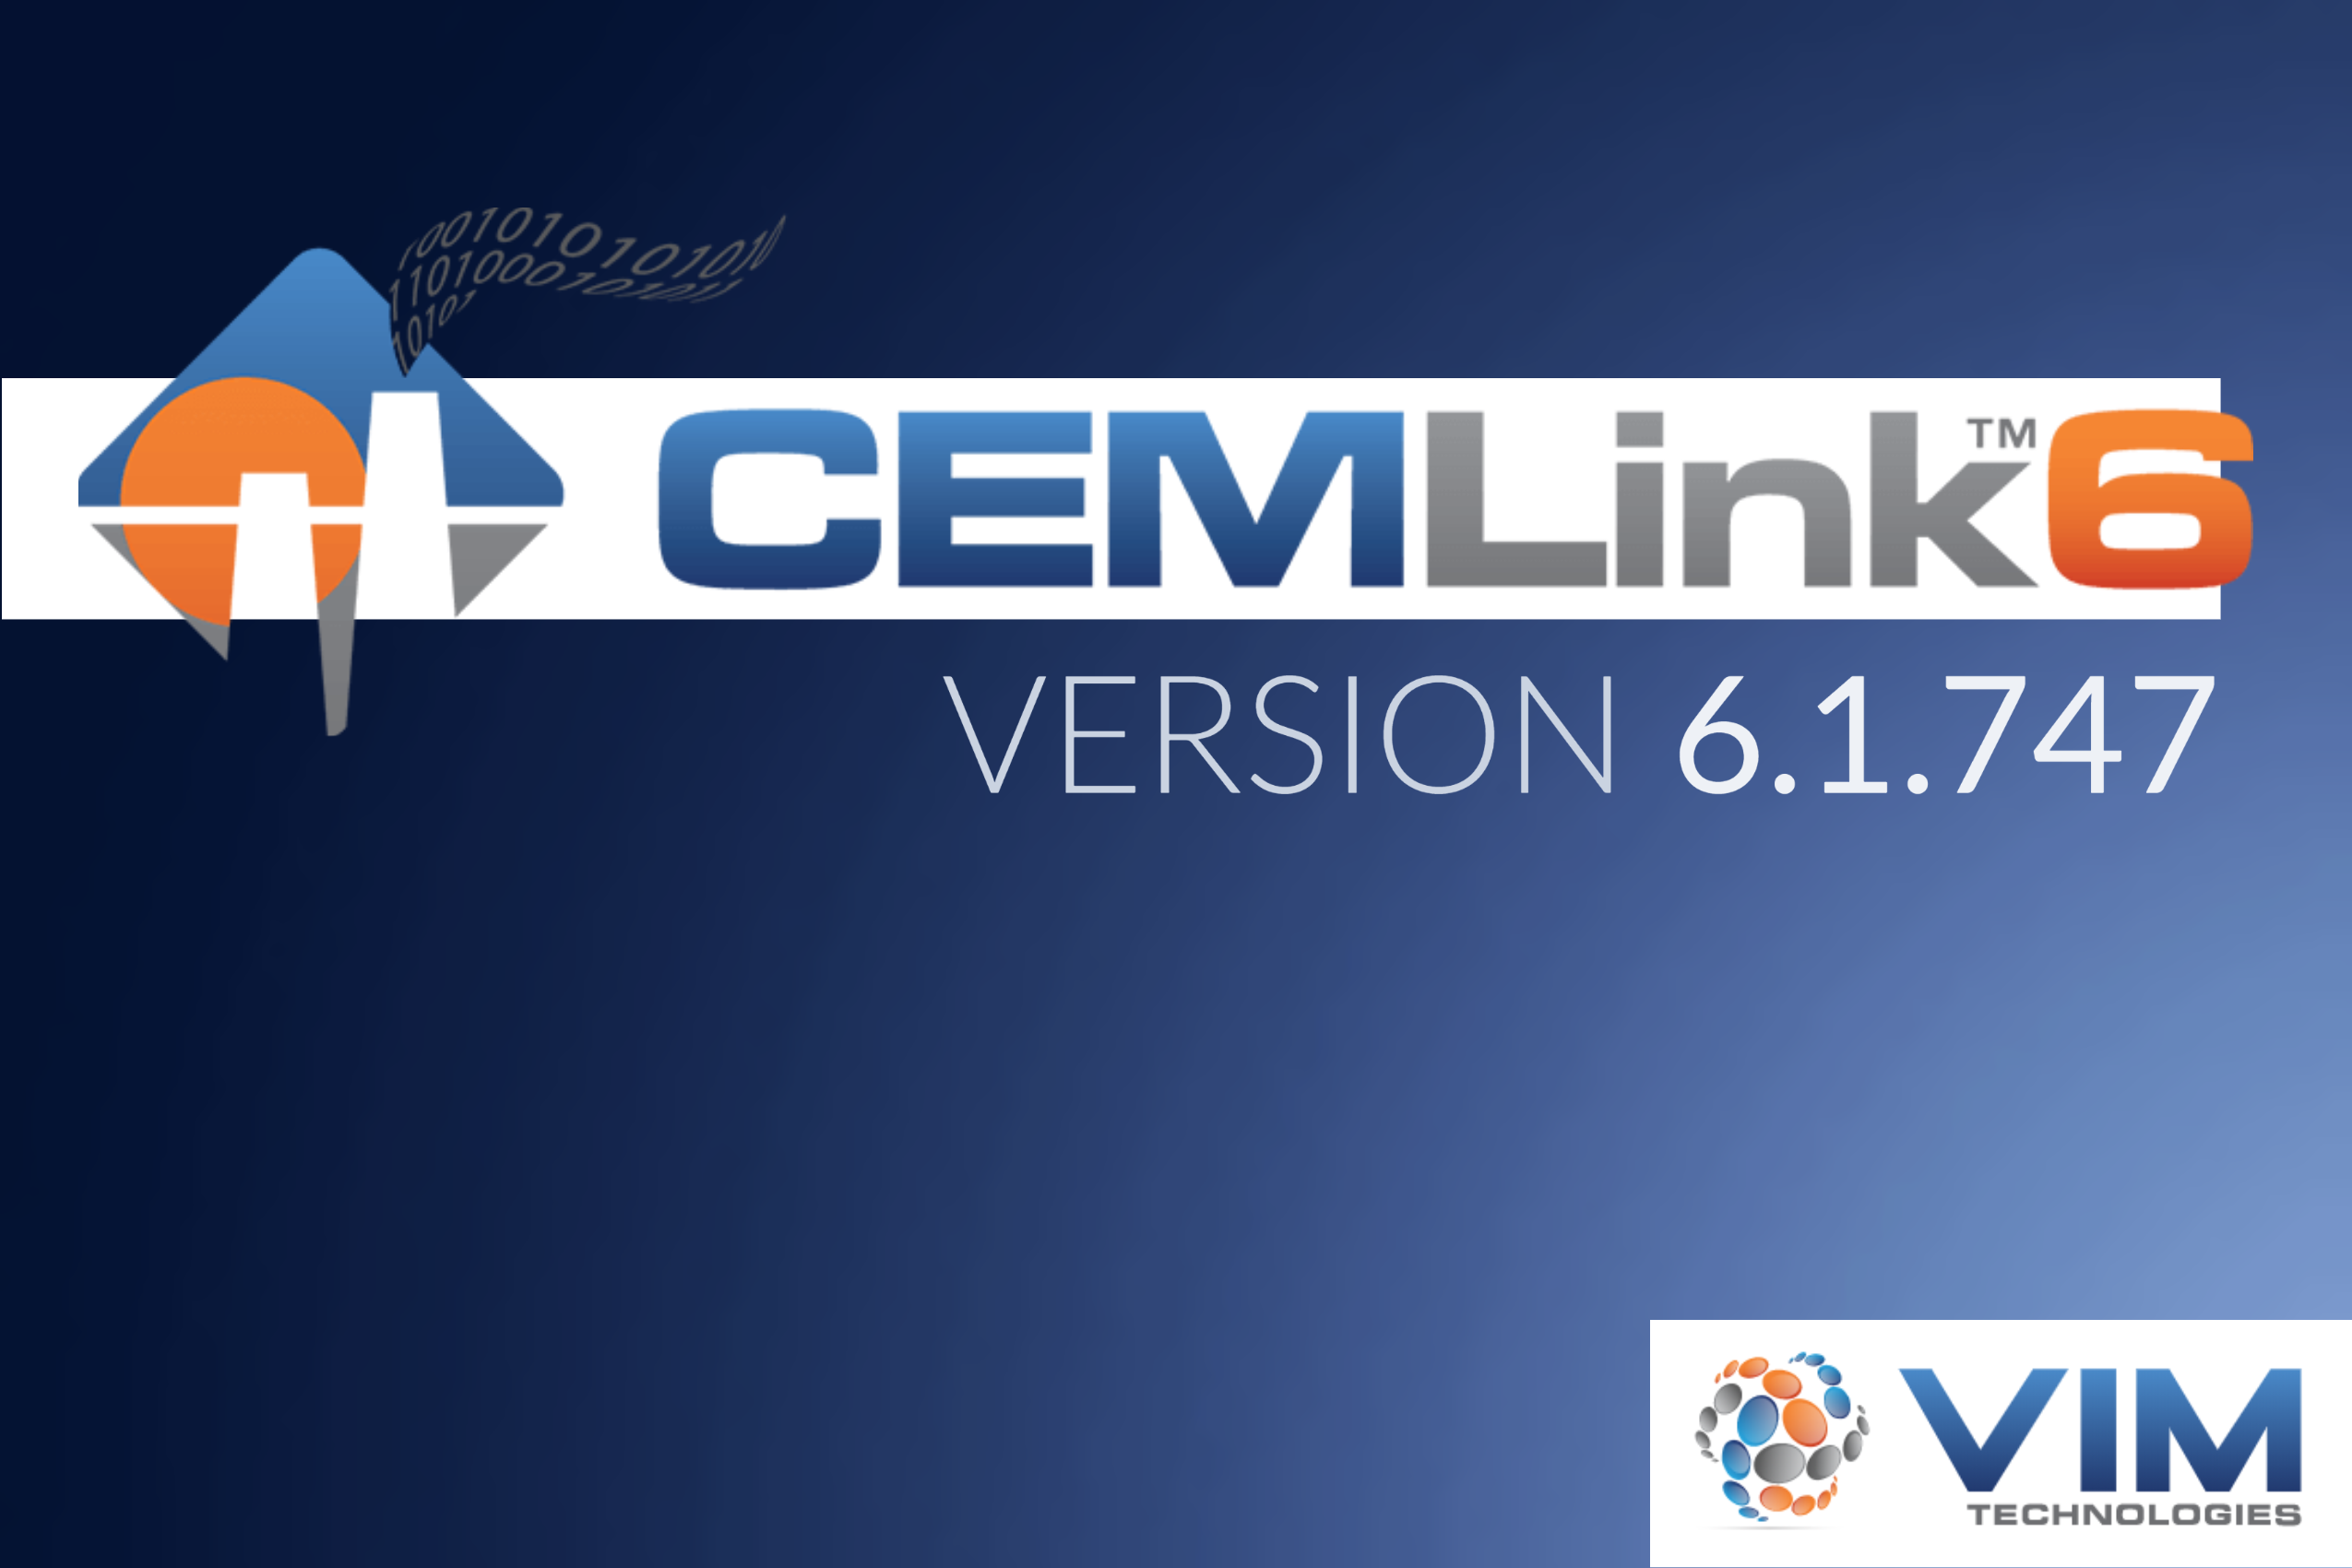 CEMLink6 Version 6.1.747 Now Available